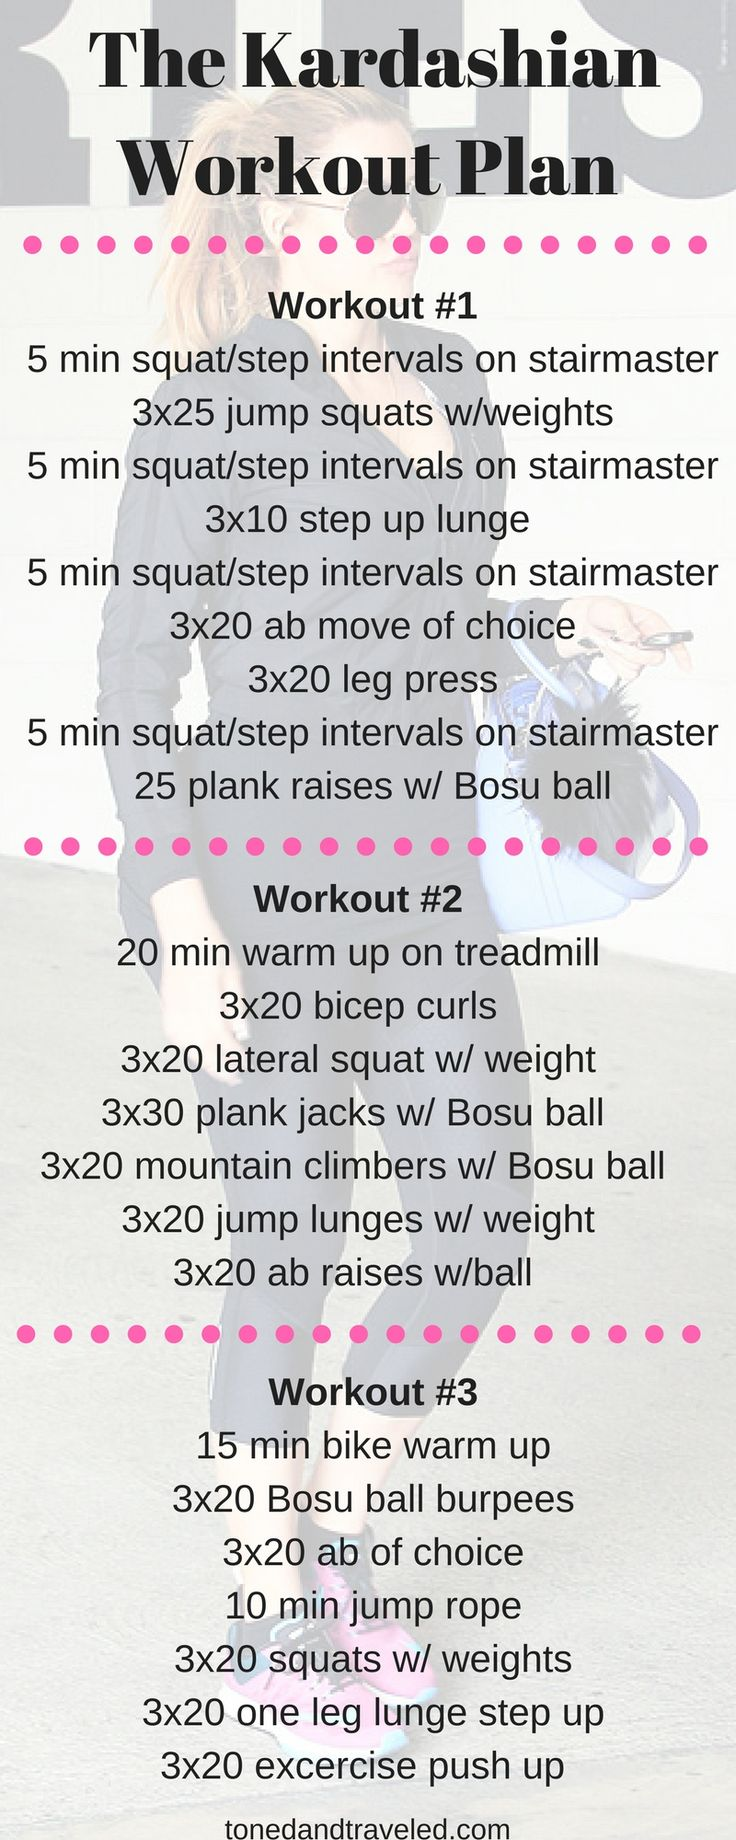 If there is one thing I have learned from watching the Kardashian's snapchat stories, it is that they know how to workout. Well, at least their trainers know how to.The workouts range from high intensity intervals to isolated movements. With a major focu